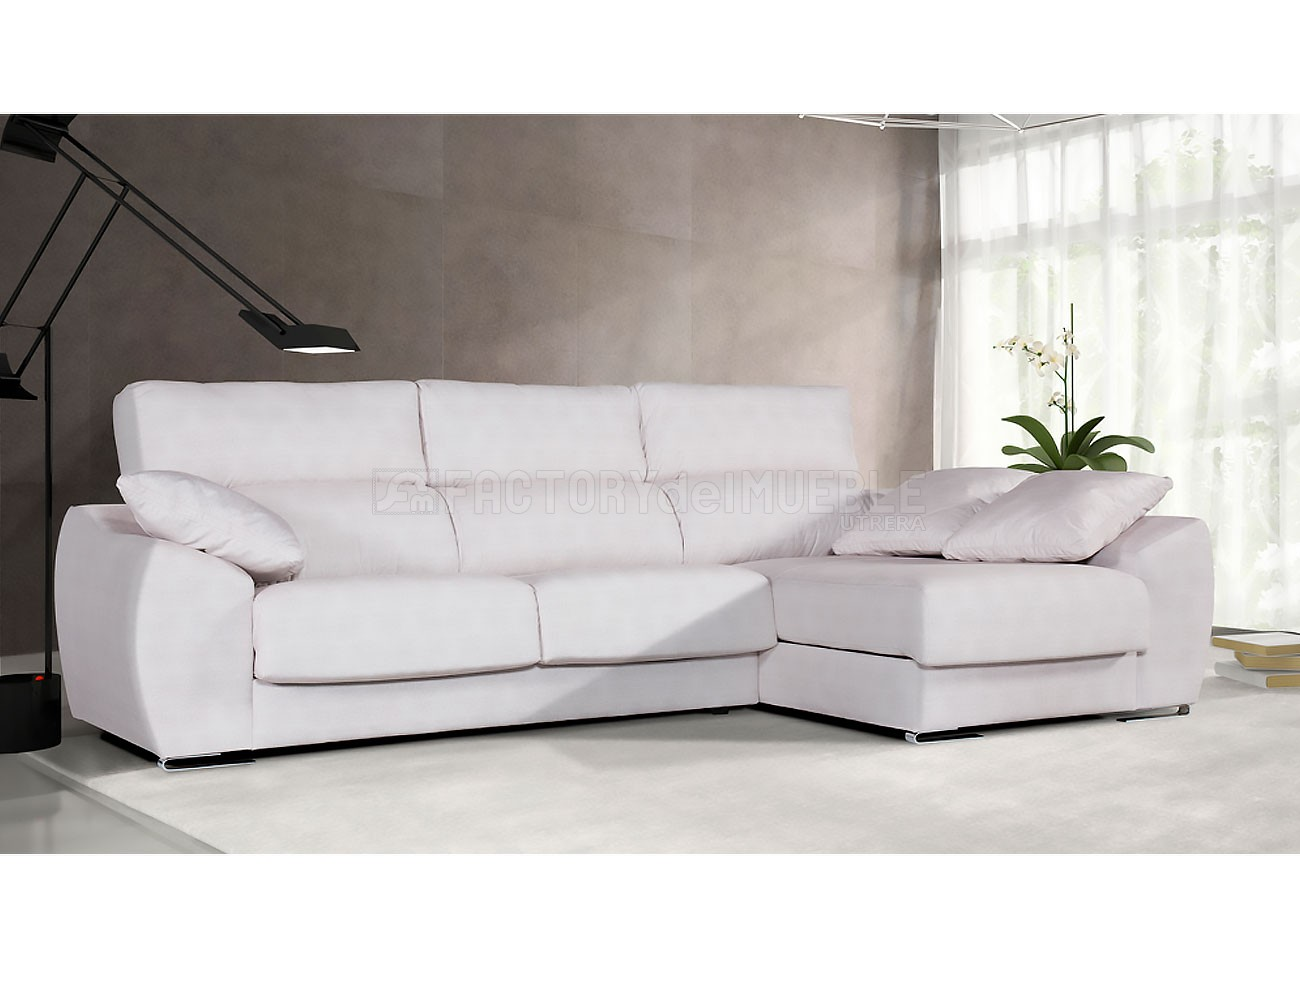 Sofa chaiselongue tosca2